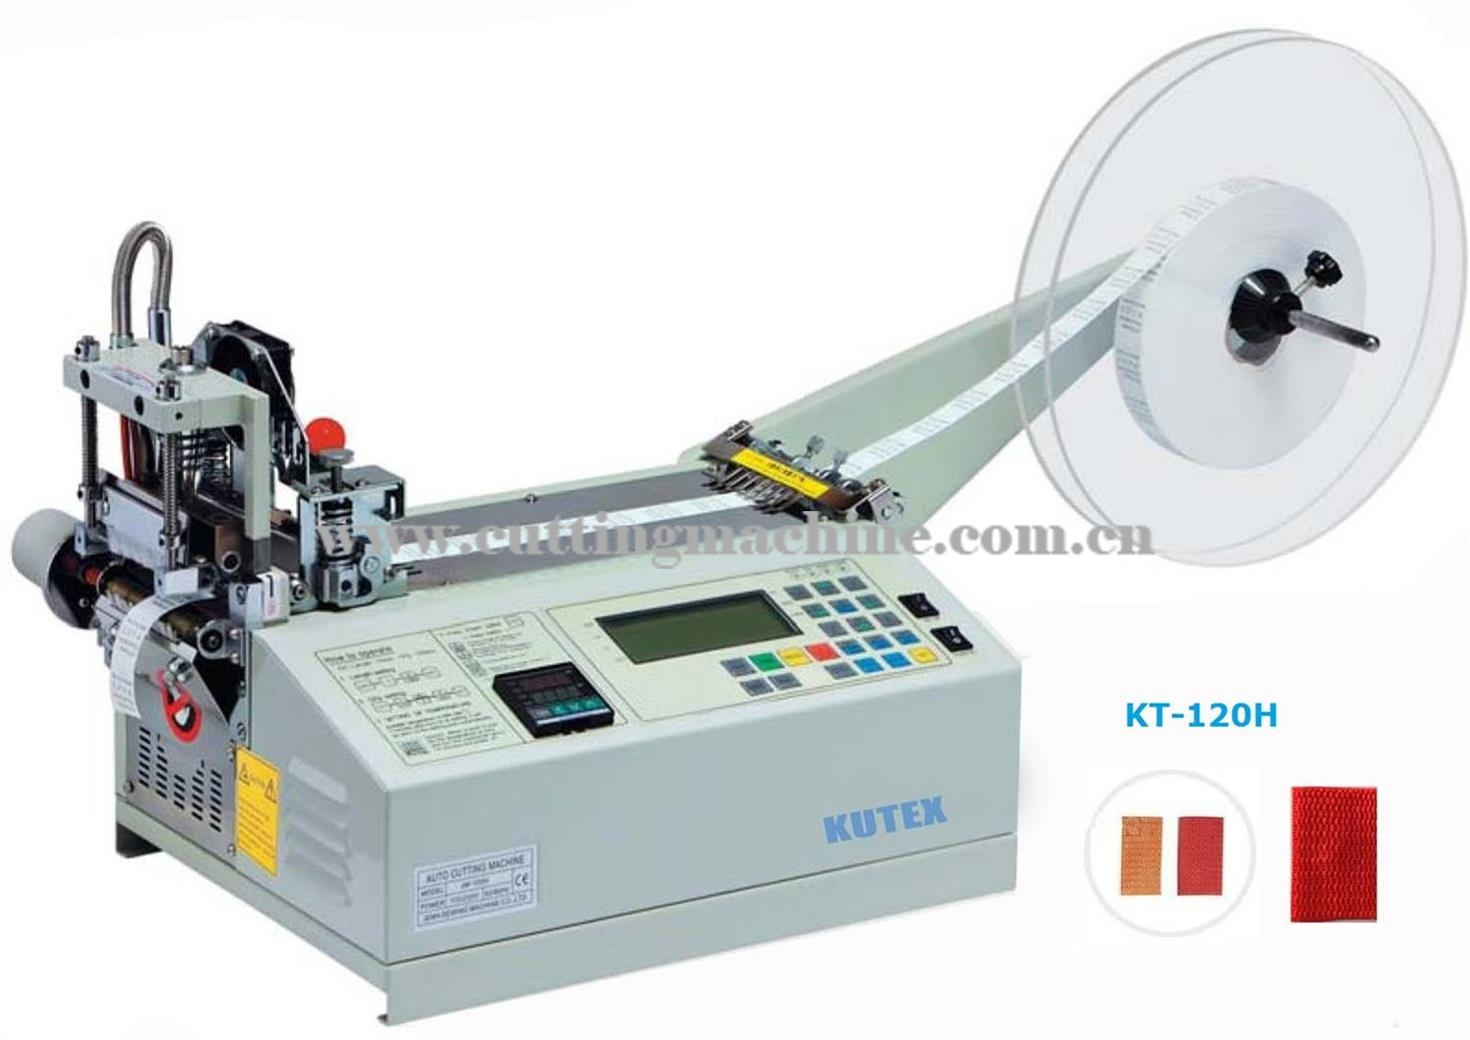 Hot Knife Automatic Webbing Cutter